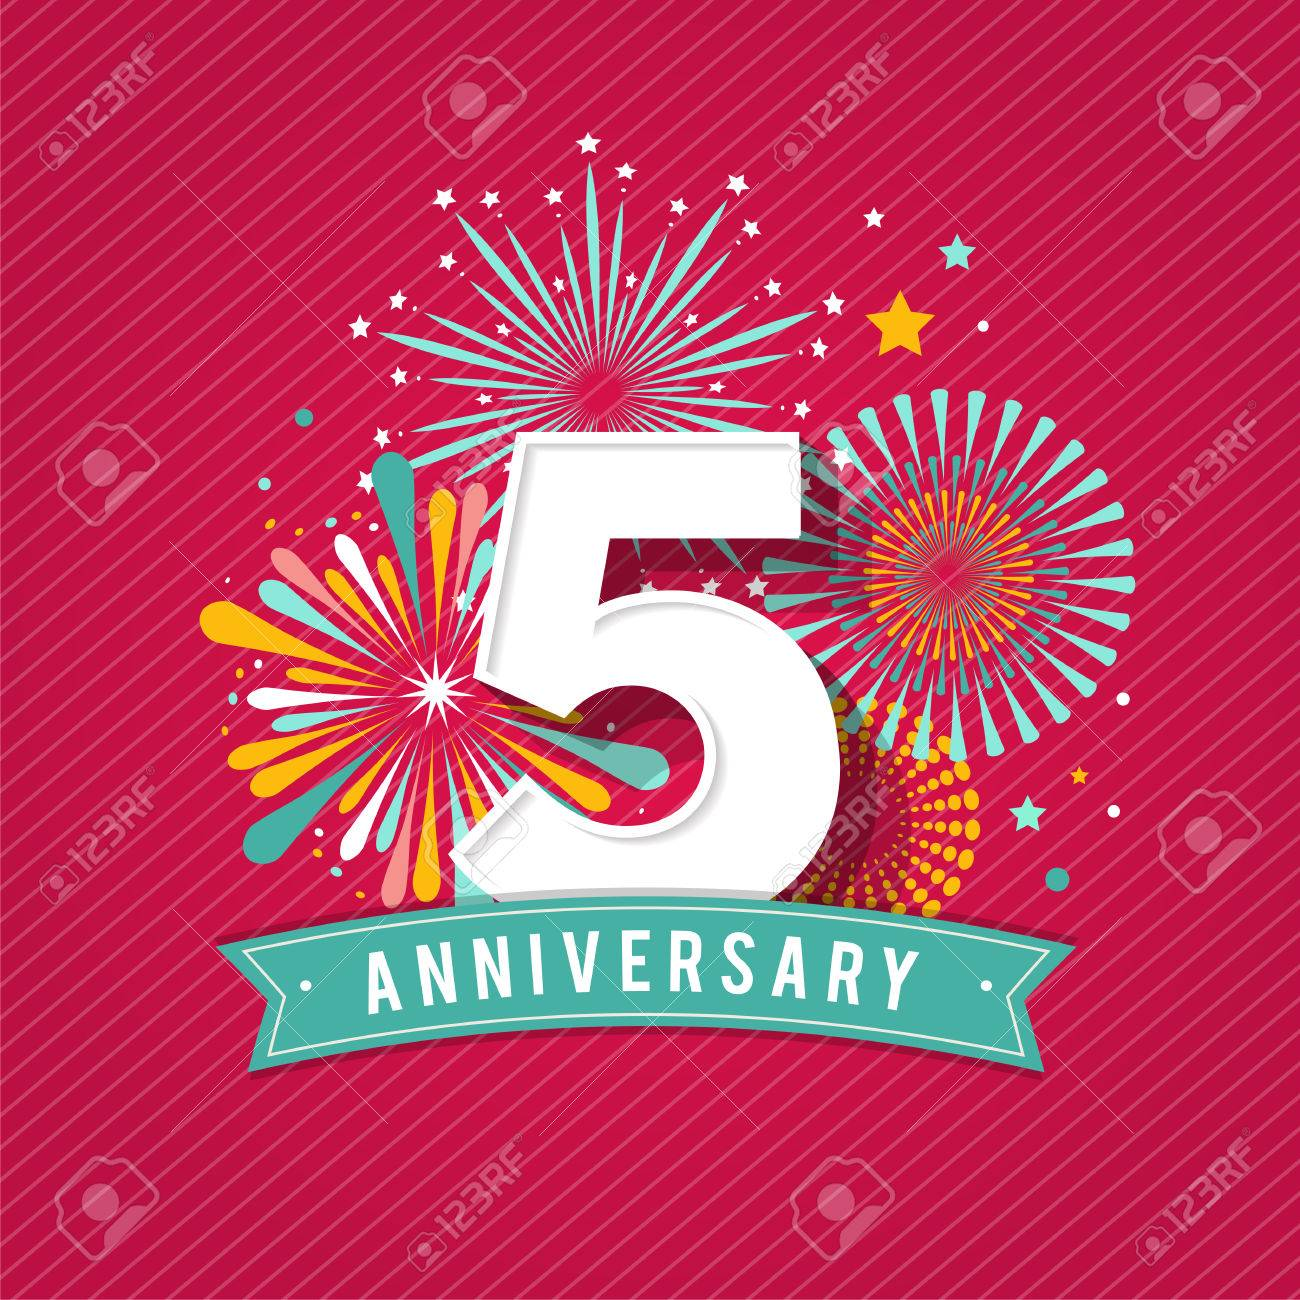 Anniversary fireworks and celebration background, poster, banner - 60330232